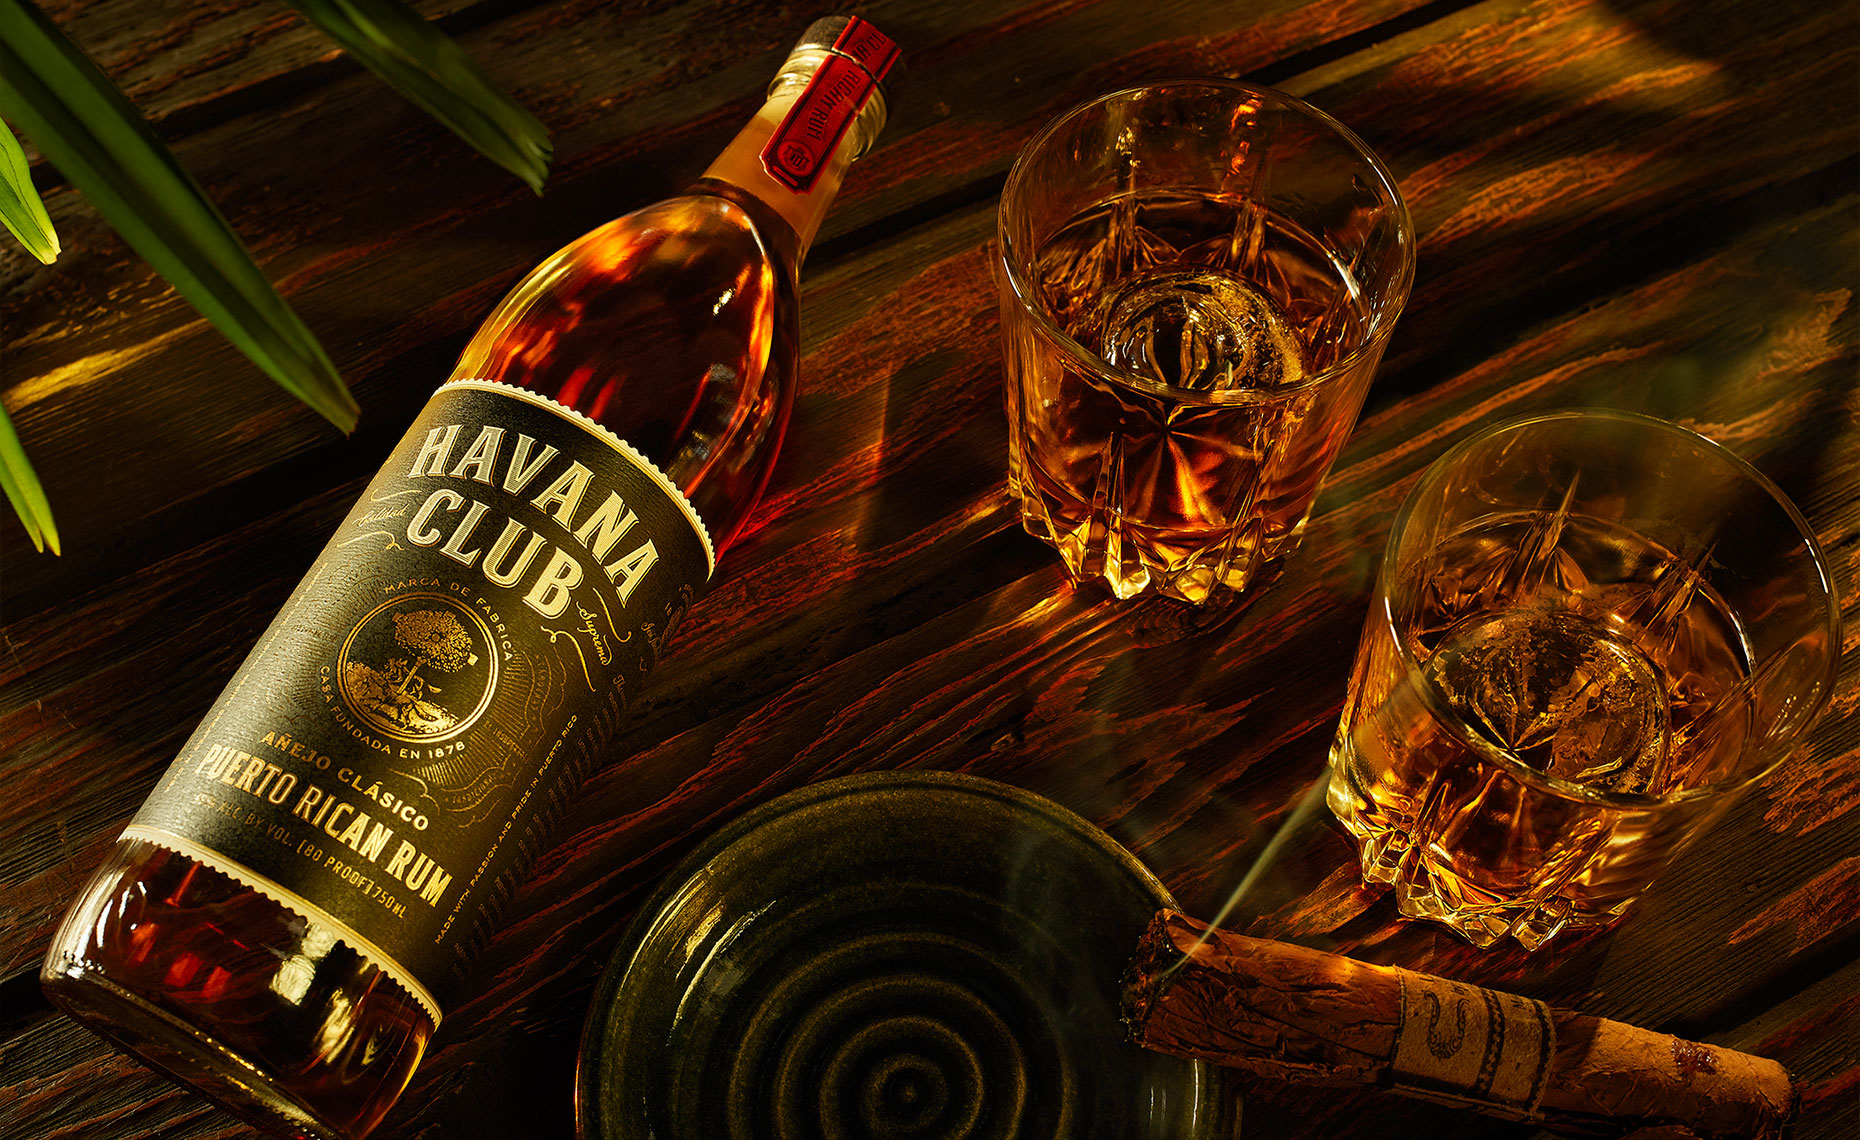 beverage photo of havana club puerto rican rum by Brian Kaldorf